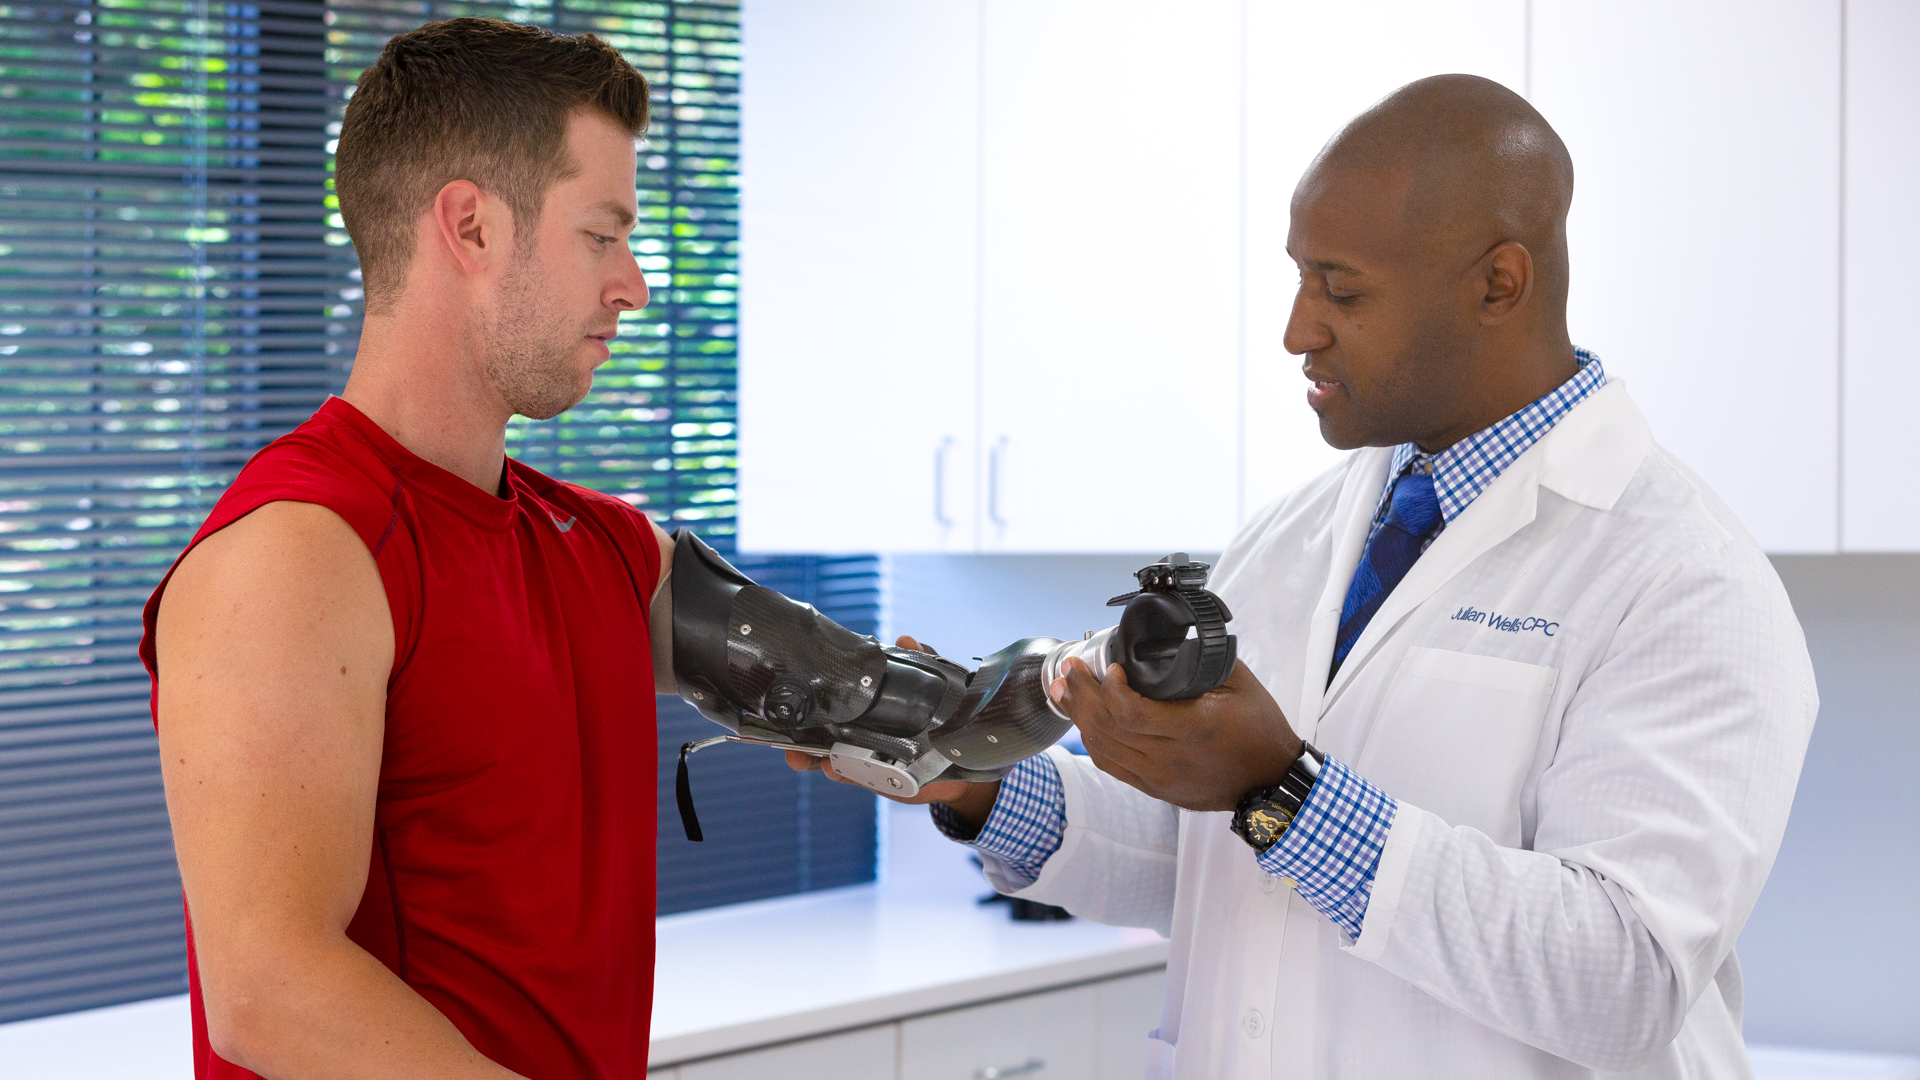 Prosthetist Julian Wells working with Max Okun on activity-specific workout prosthesis